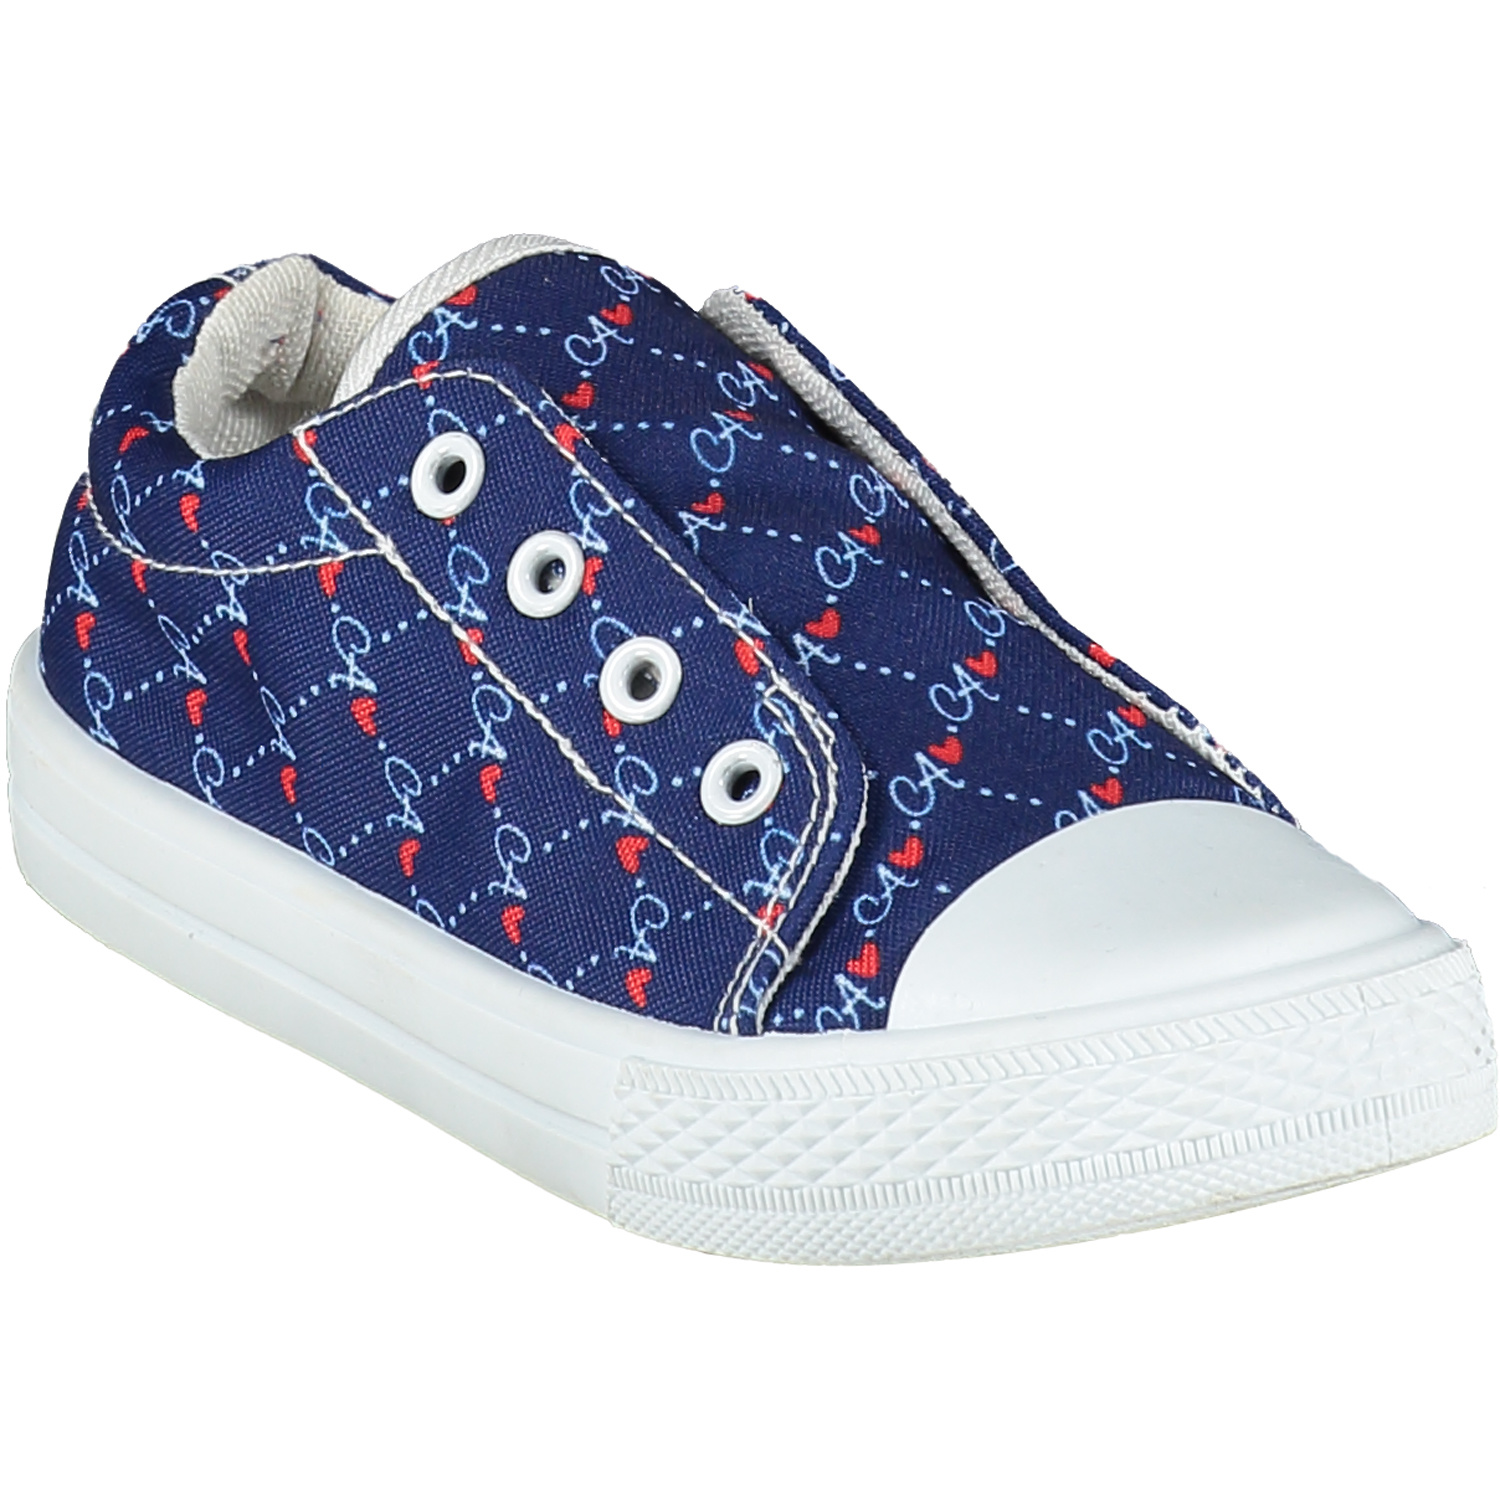 Adee Adee Laceless Printed Canvas Trainer - French Navy